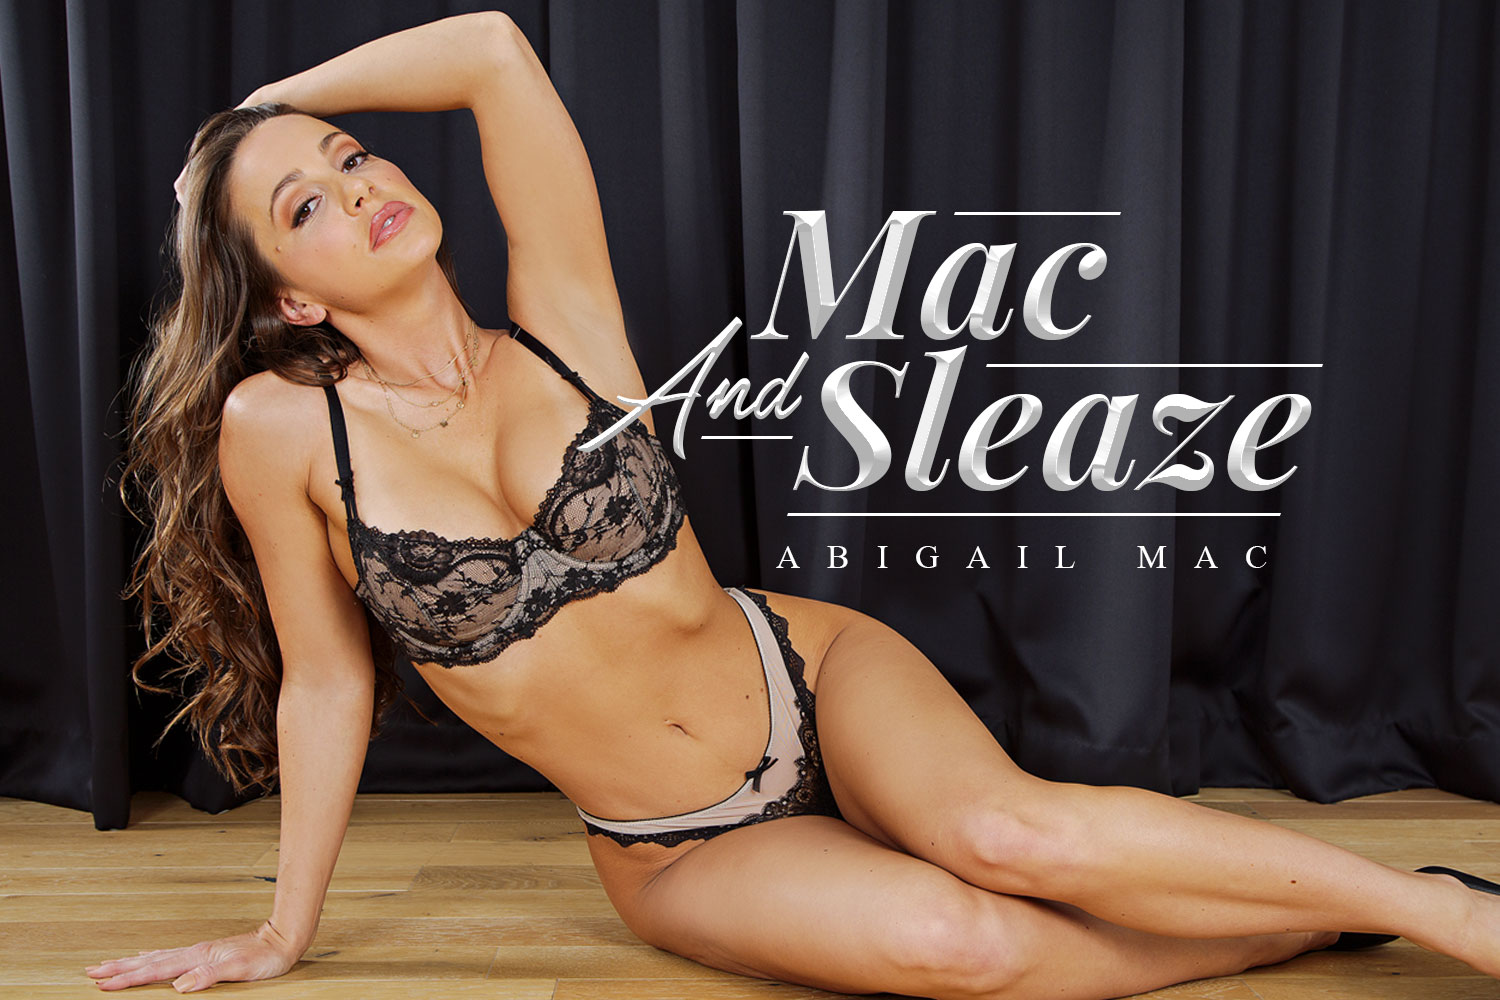 Mac And Sleaze VR Porn Video